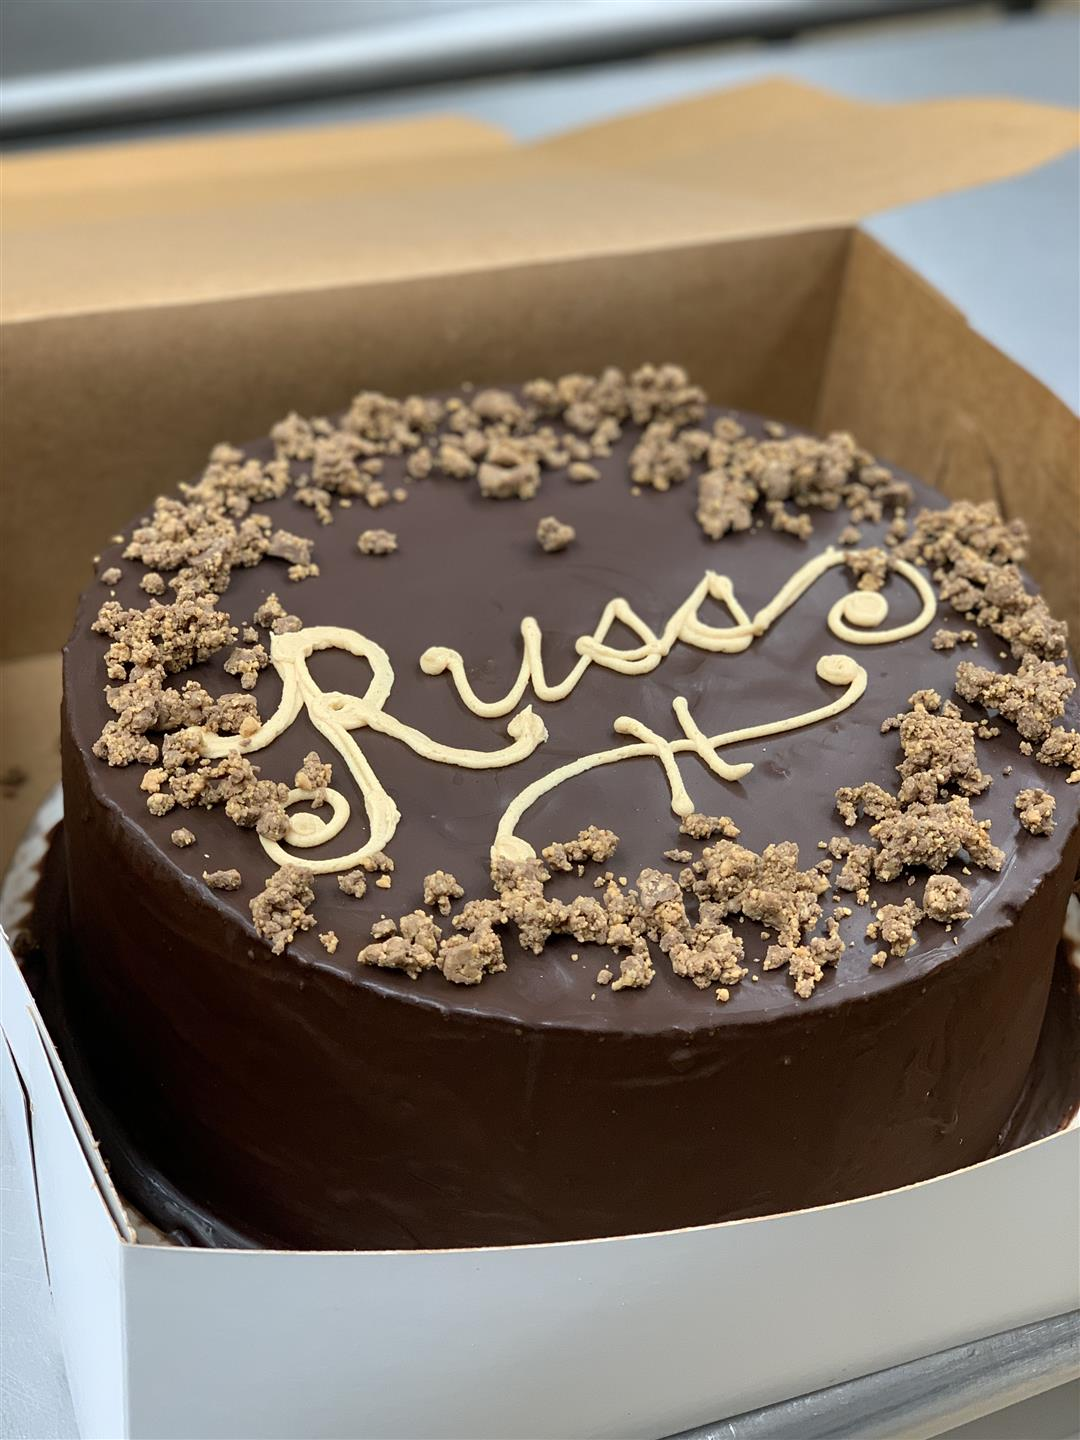 chocolate cake with the name Russ written on top